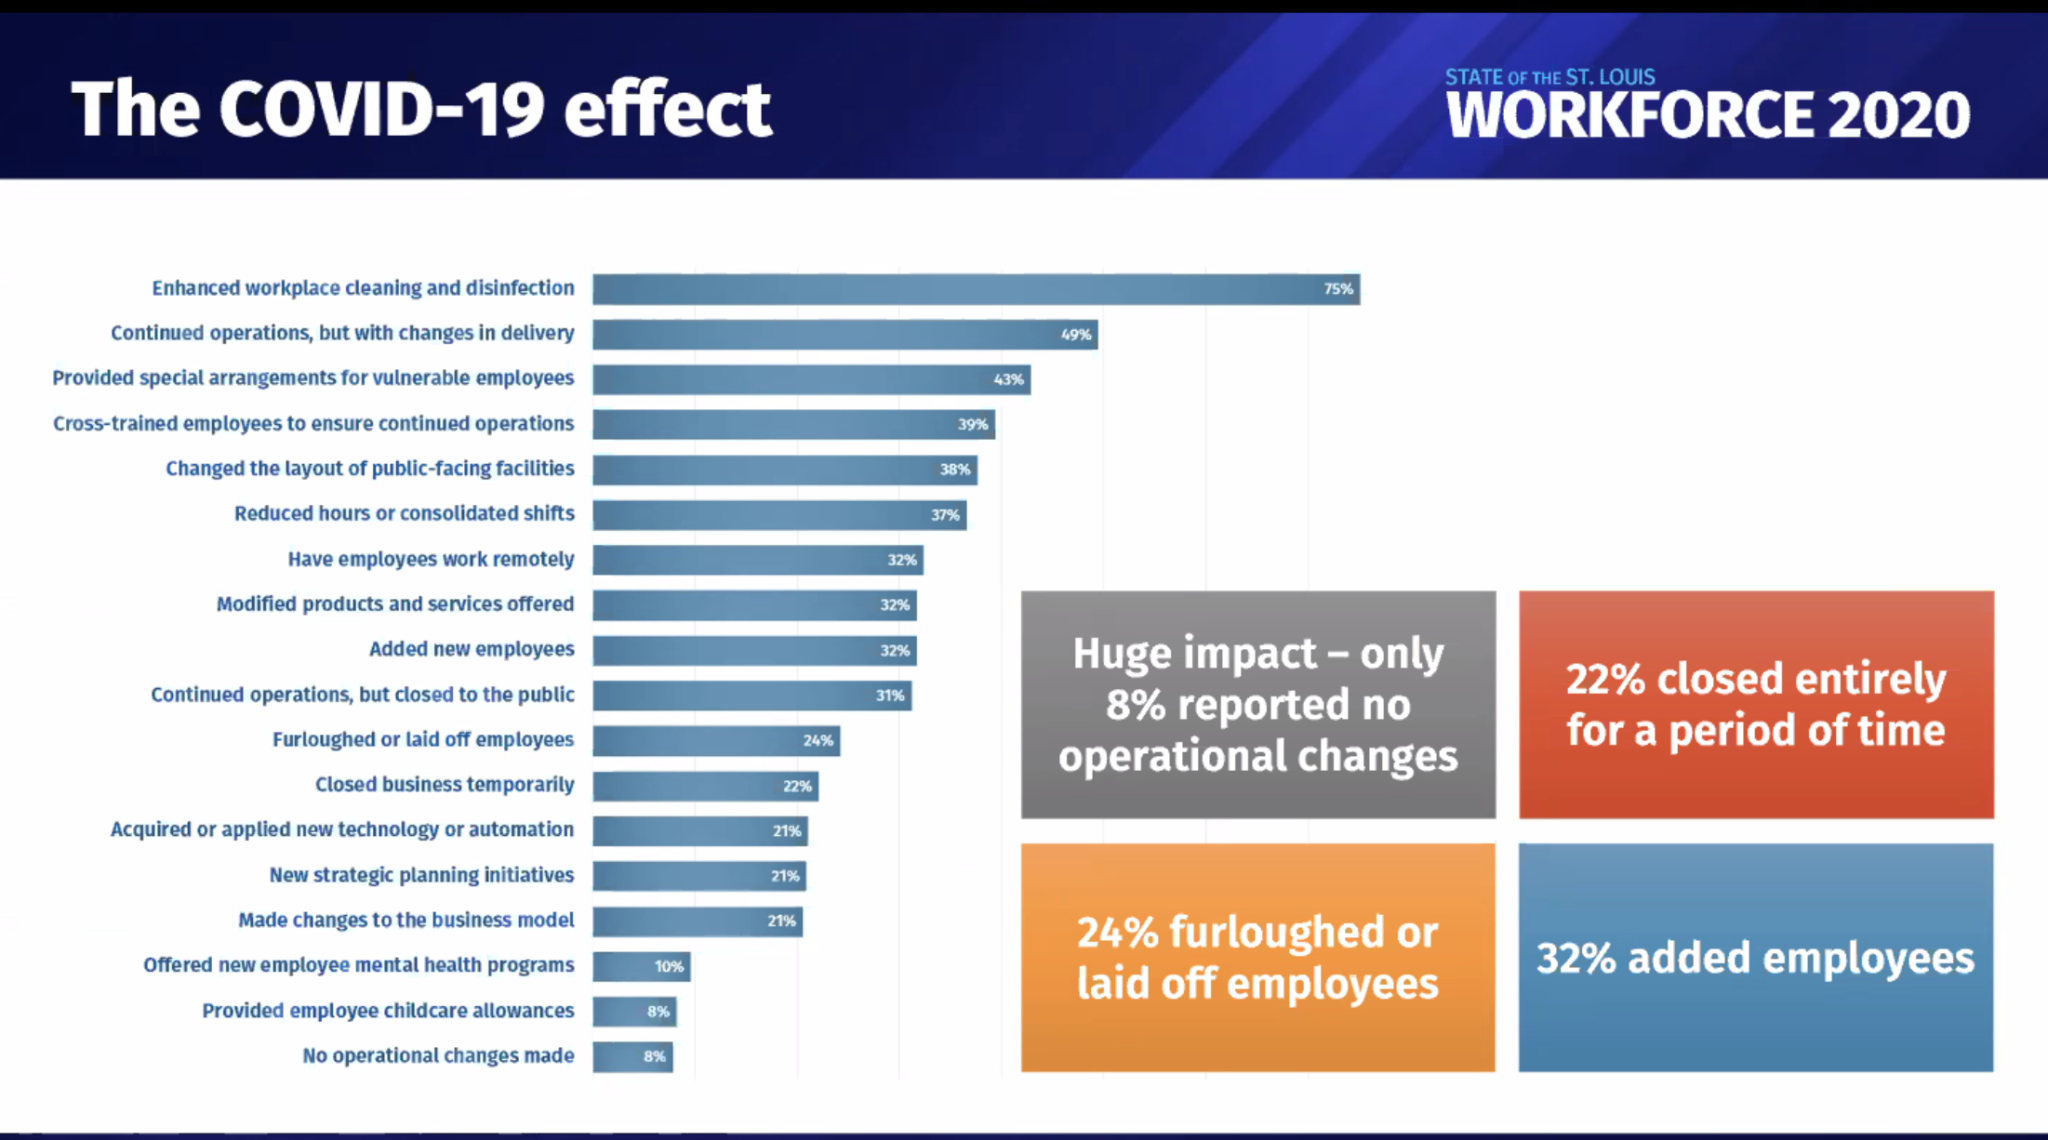 Affects of COVID-19 on St. Louis workplace behaviors